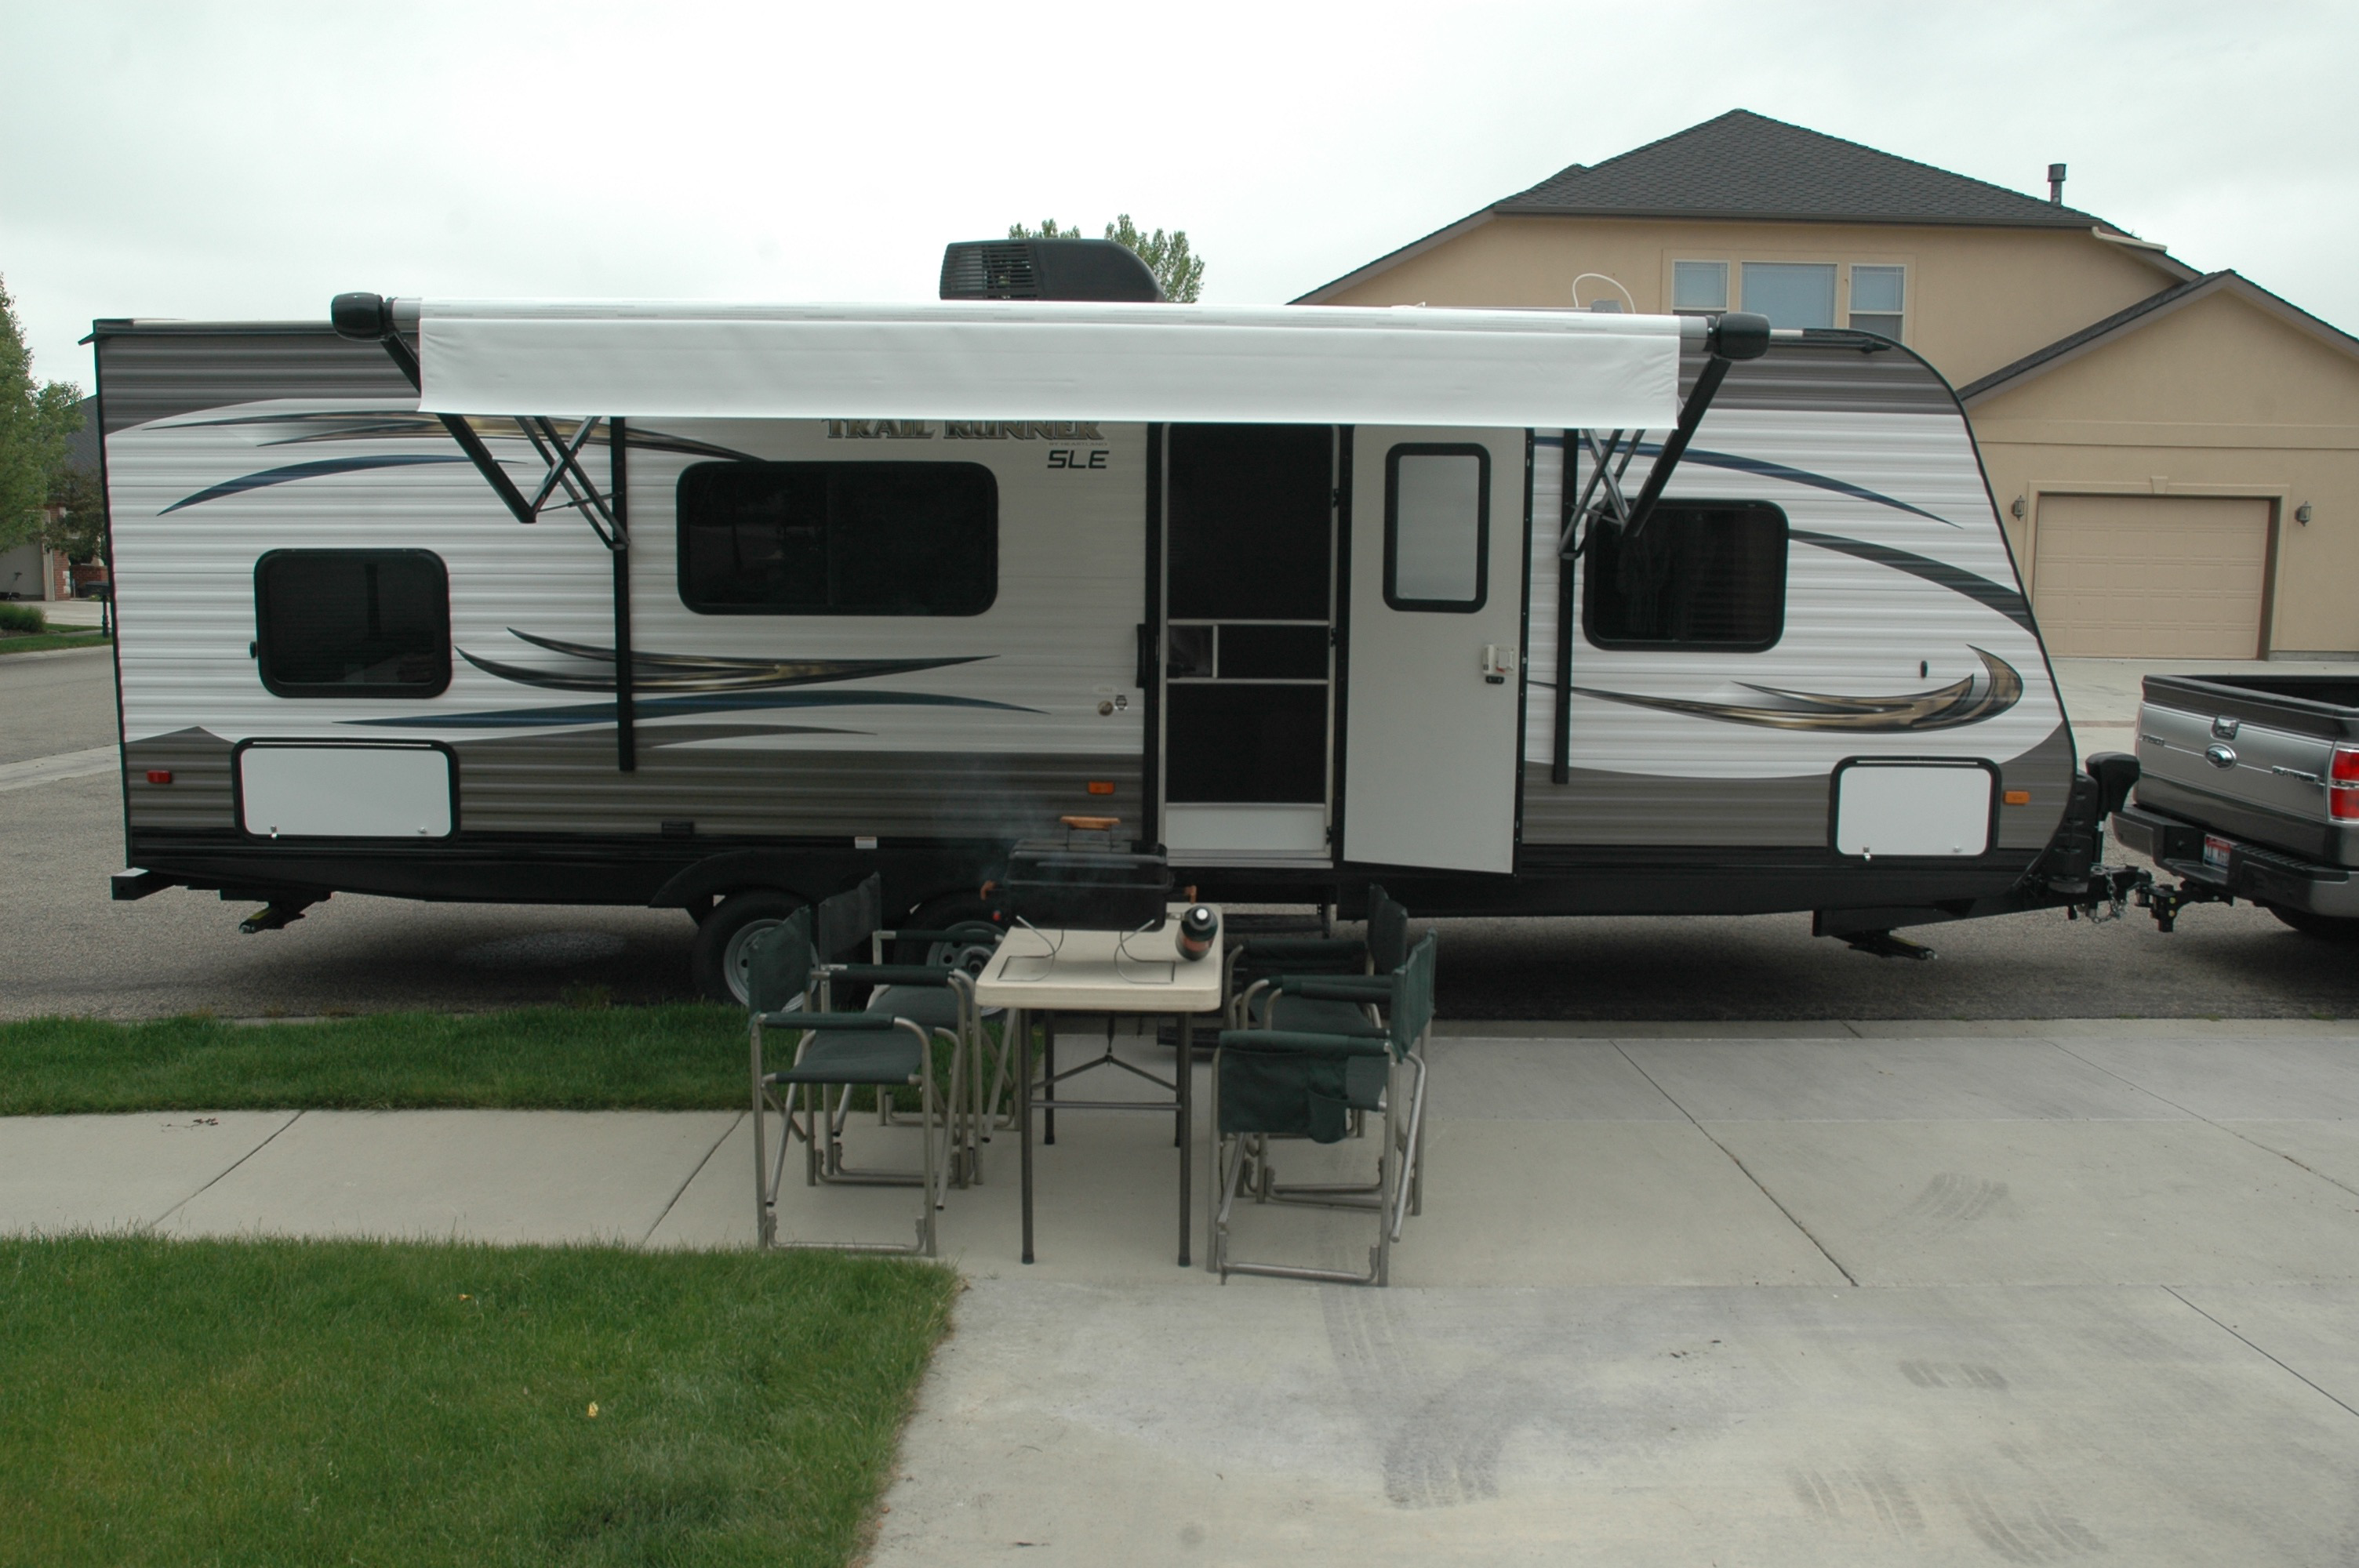 Original Used 2015 Jayco Jayflight Travel Trailer For Sale  Boise ID